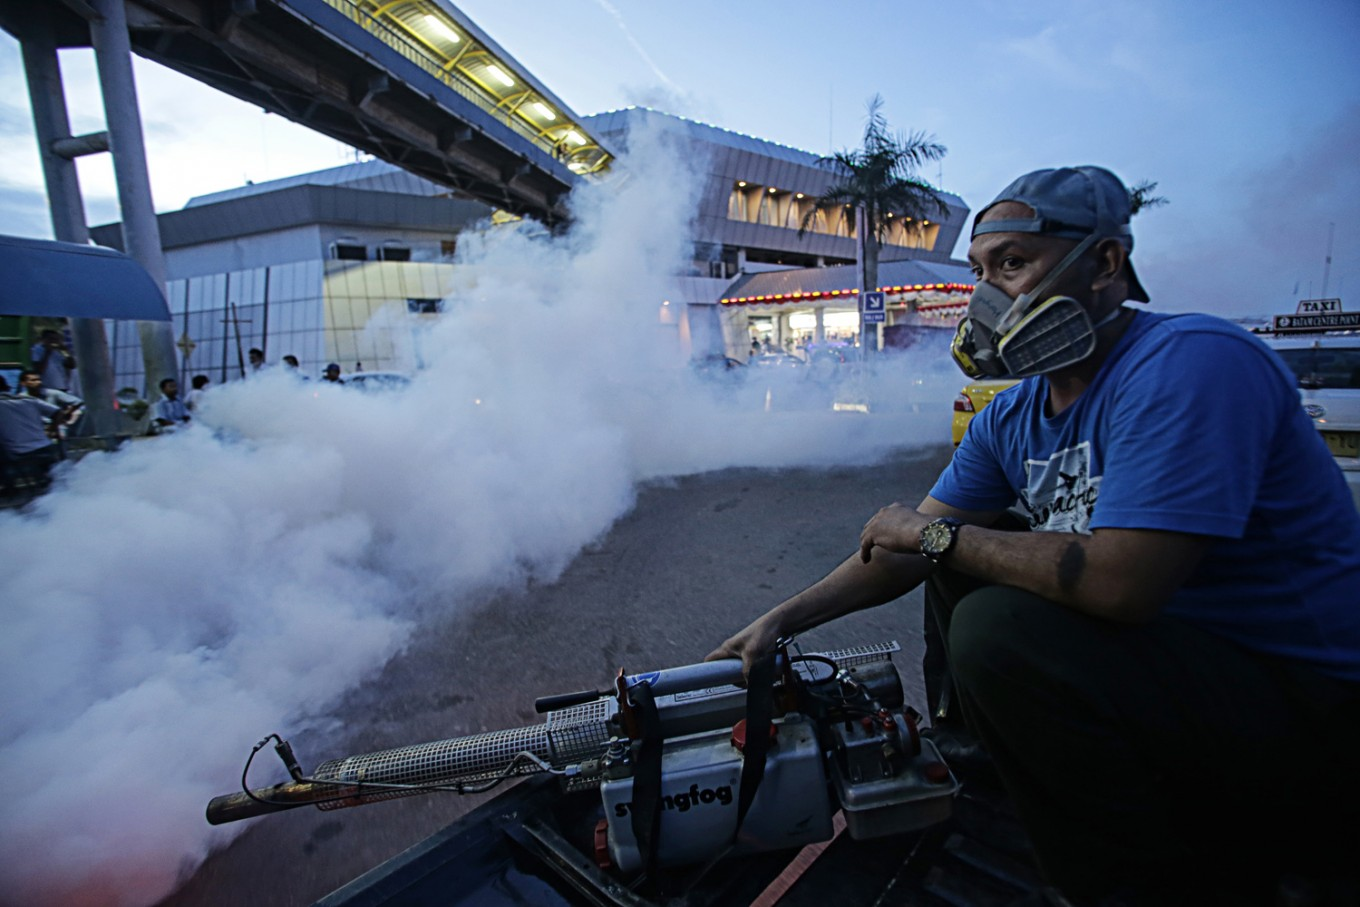 No Batam-Singapore border closure over Zika, govt says